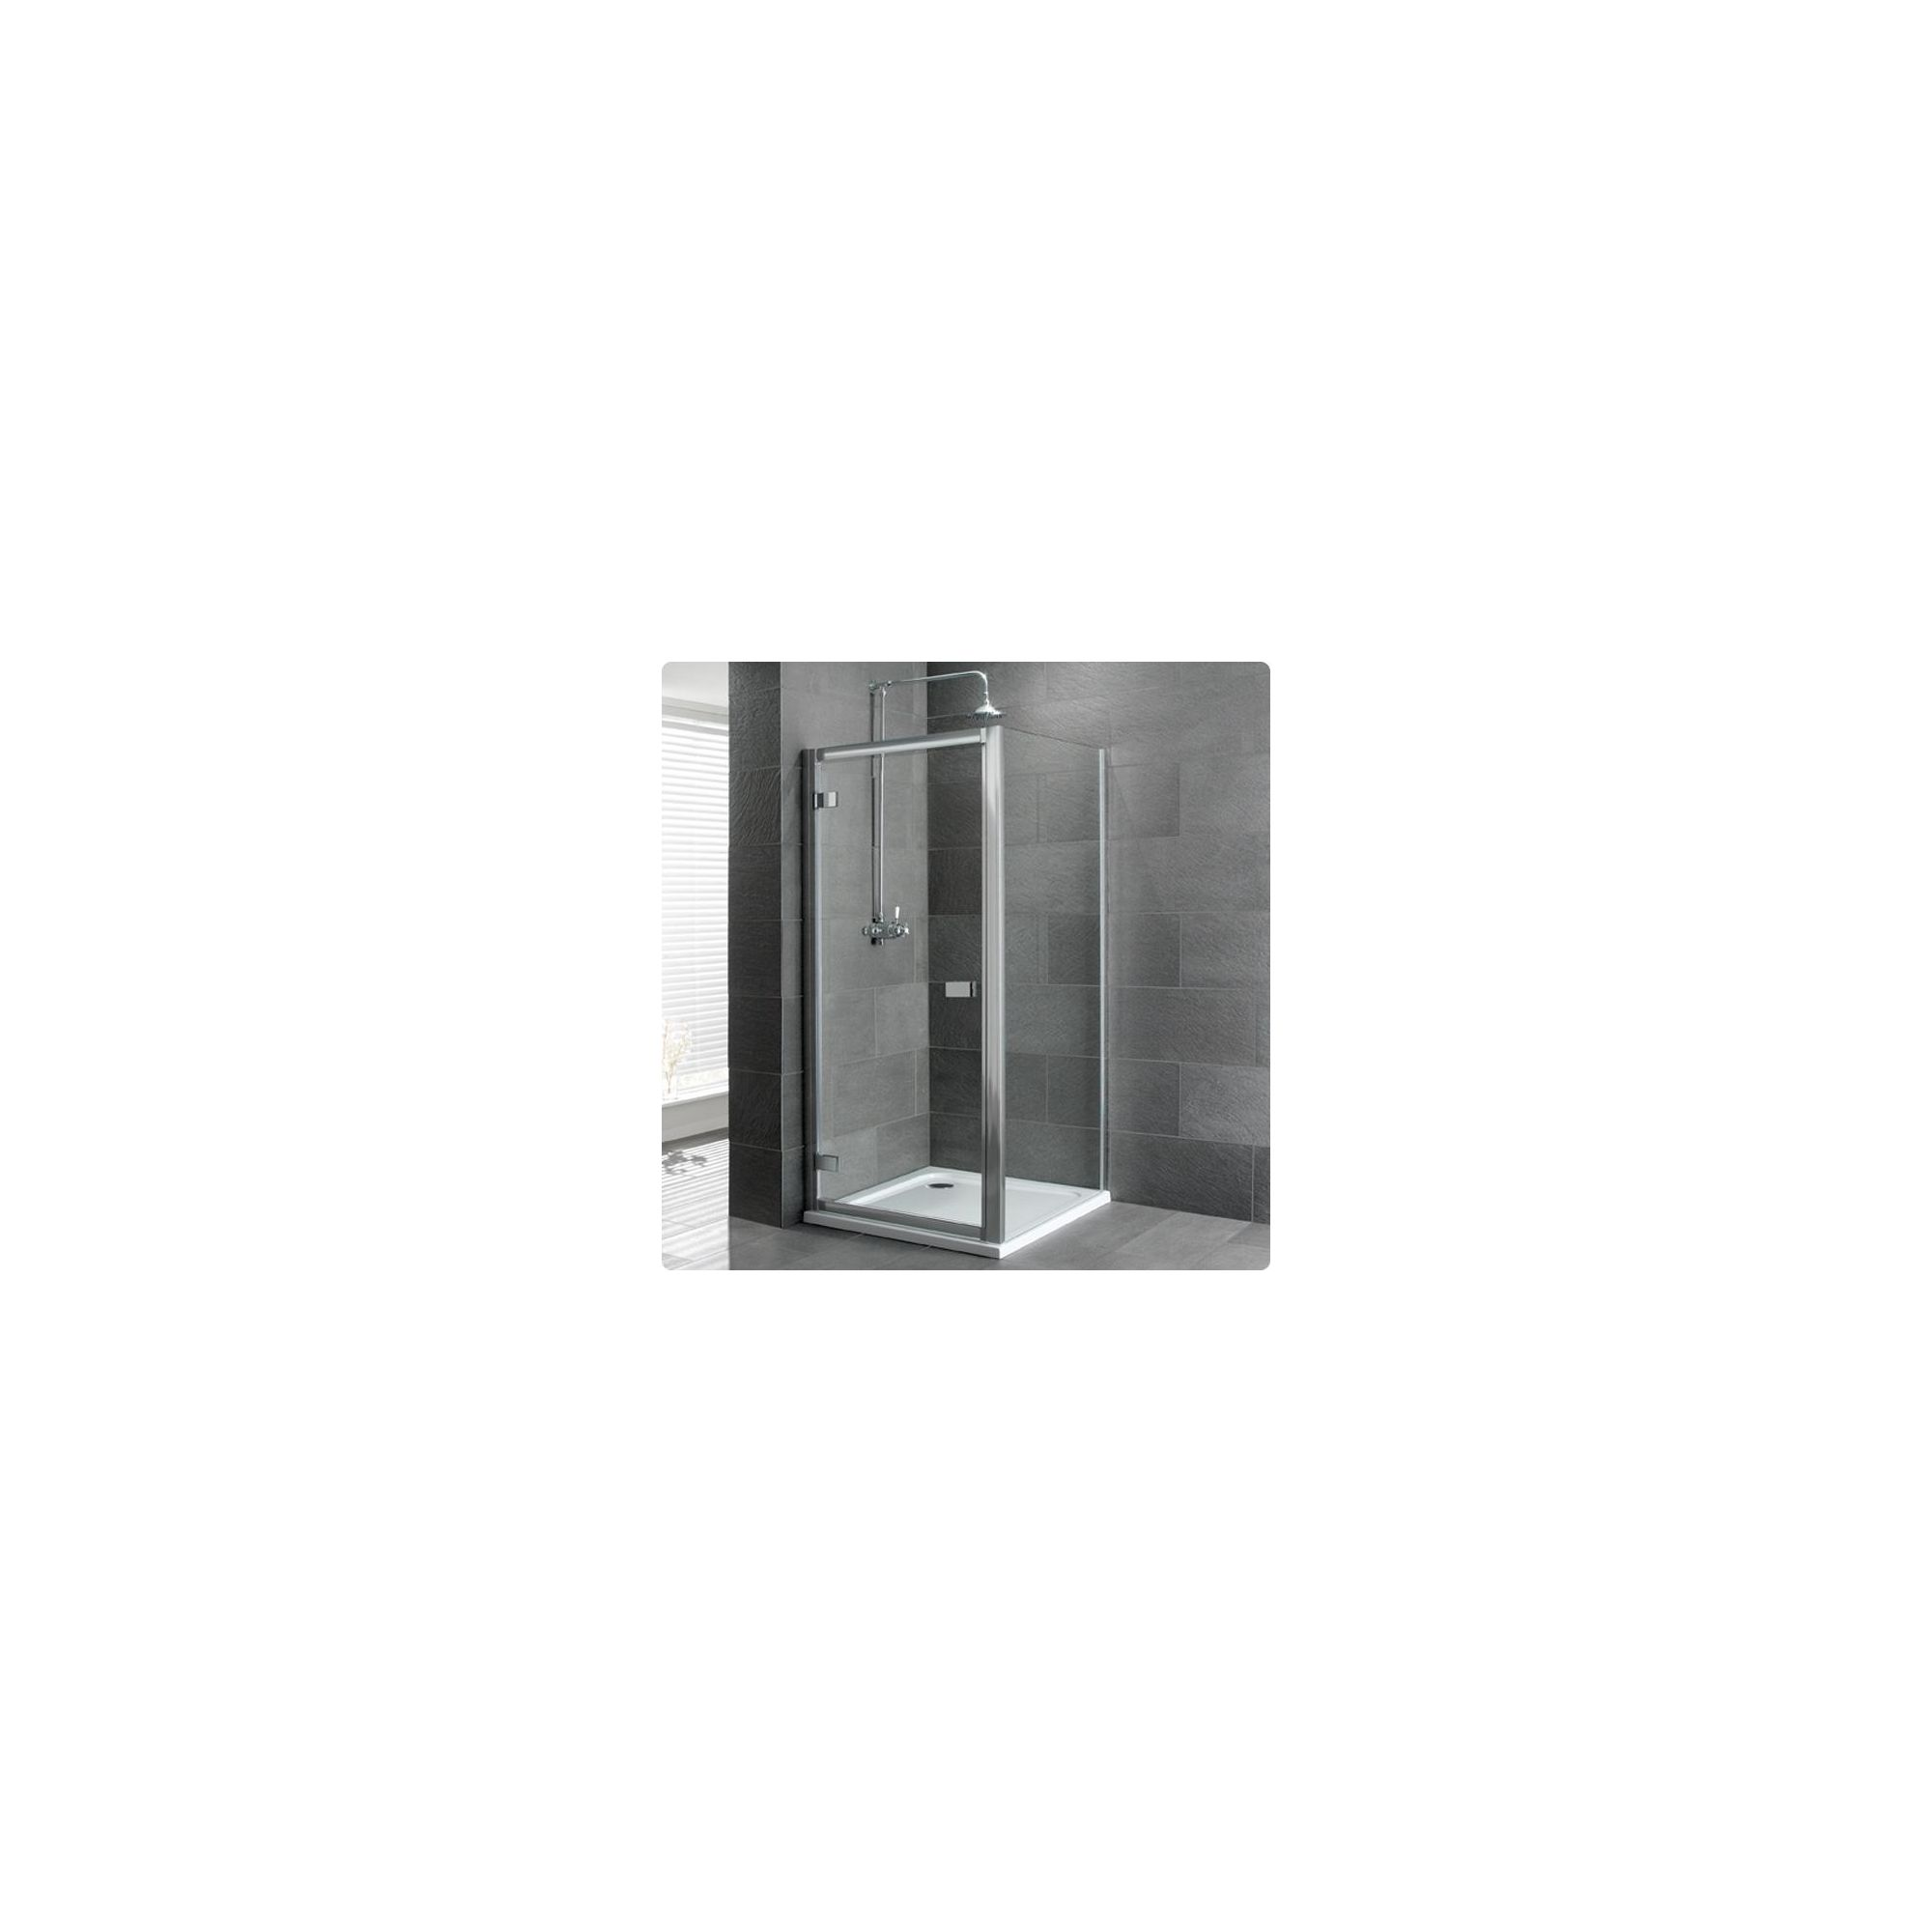 Duchy Select Silver Hinged Door Shower Enclosure, 800mm x 800mm, Standard Tray, 6mm Glass at Tescos Direct